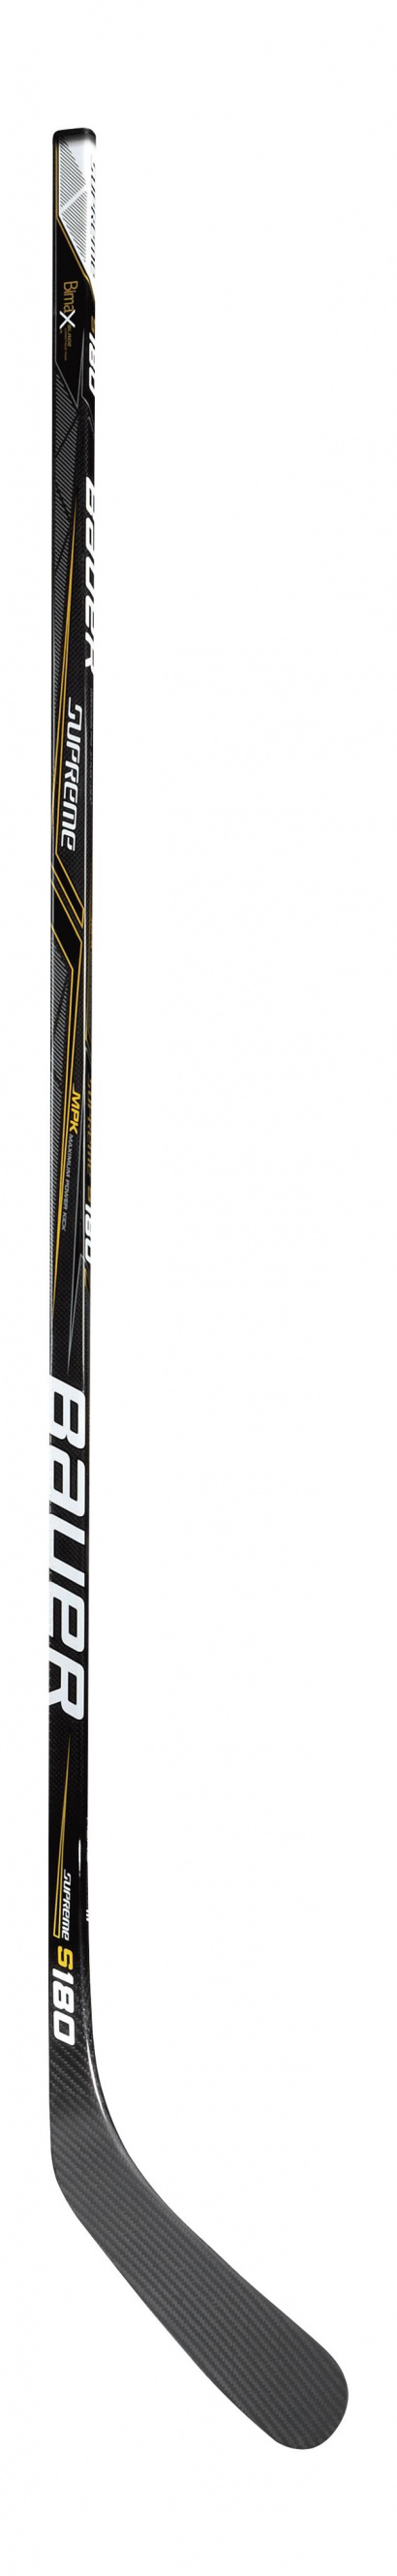 Hockey Stick Bauer SUPREME S180 Grip Sr / Senior 87